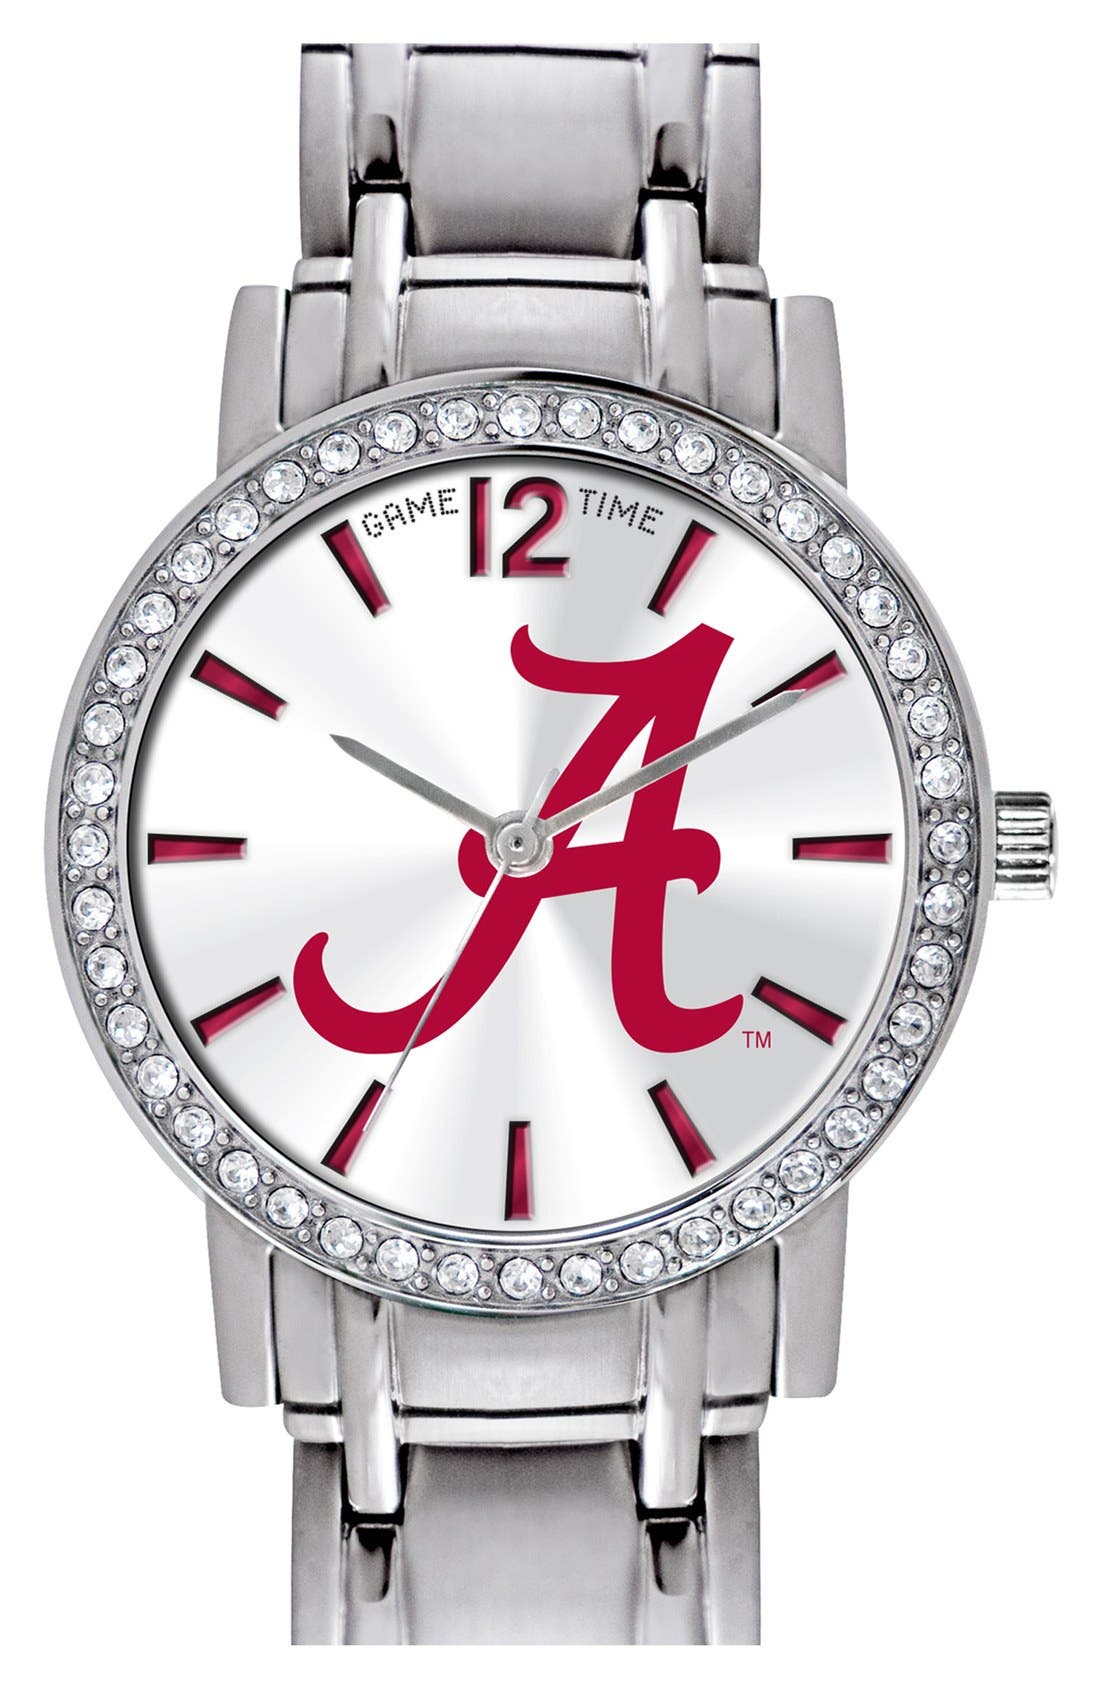 Alternate Image 1 Selected - Game Time Watches 'College All Star - University of Alabama' Crystal Bezel Bracelet Watch, 32mm